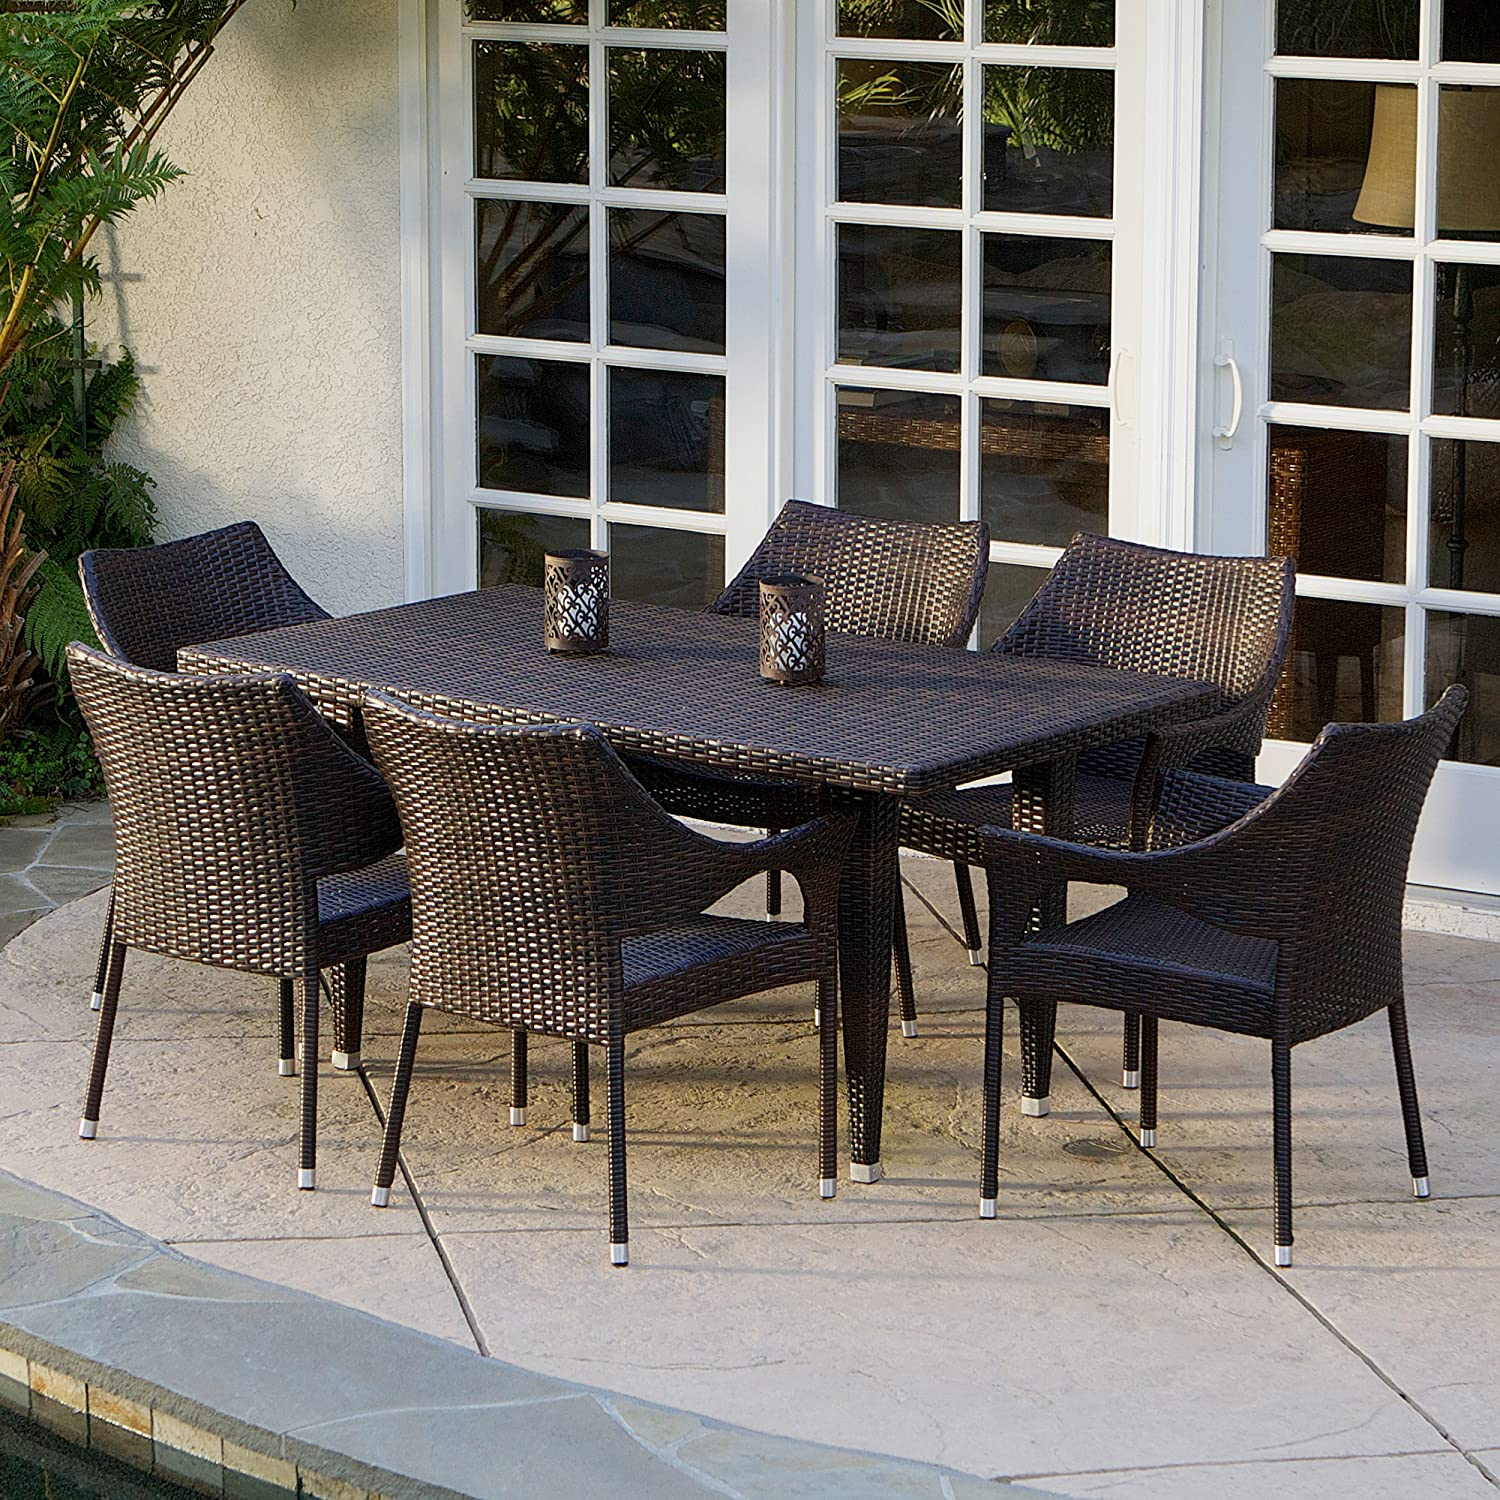 Amazon Stackable Outdoor Chairs - Amazon com 7 piece outdoor wicker dining set with stacking wicker chairs kitchen dining